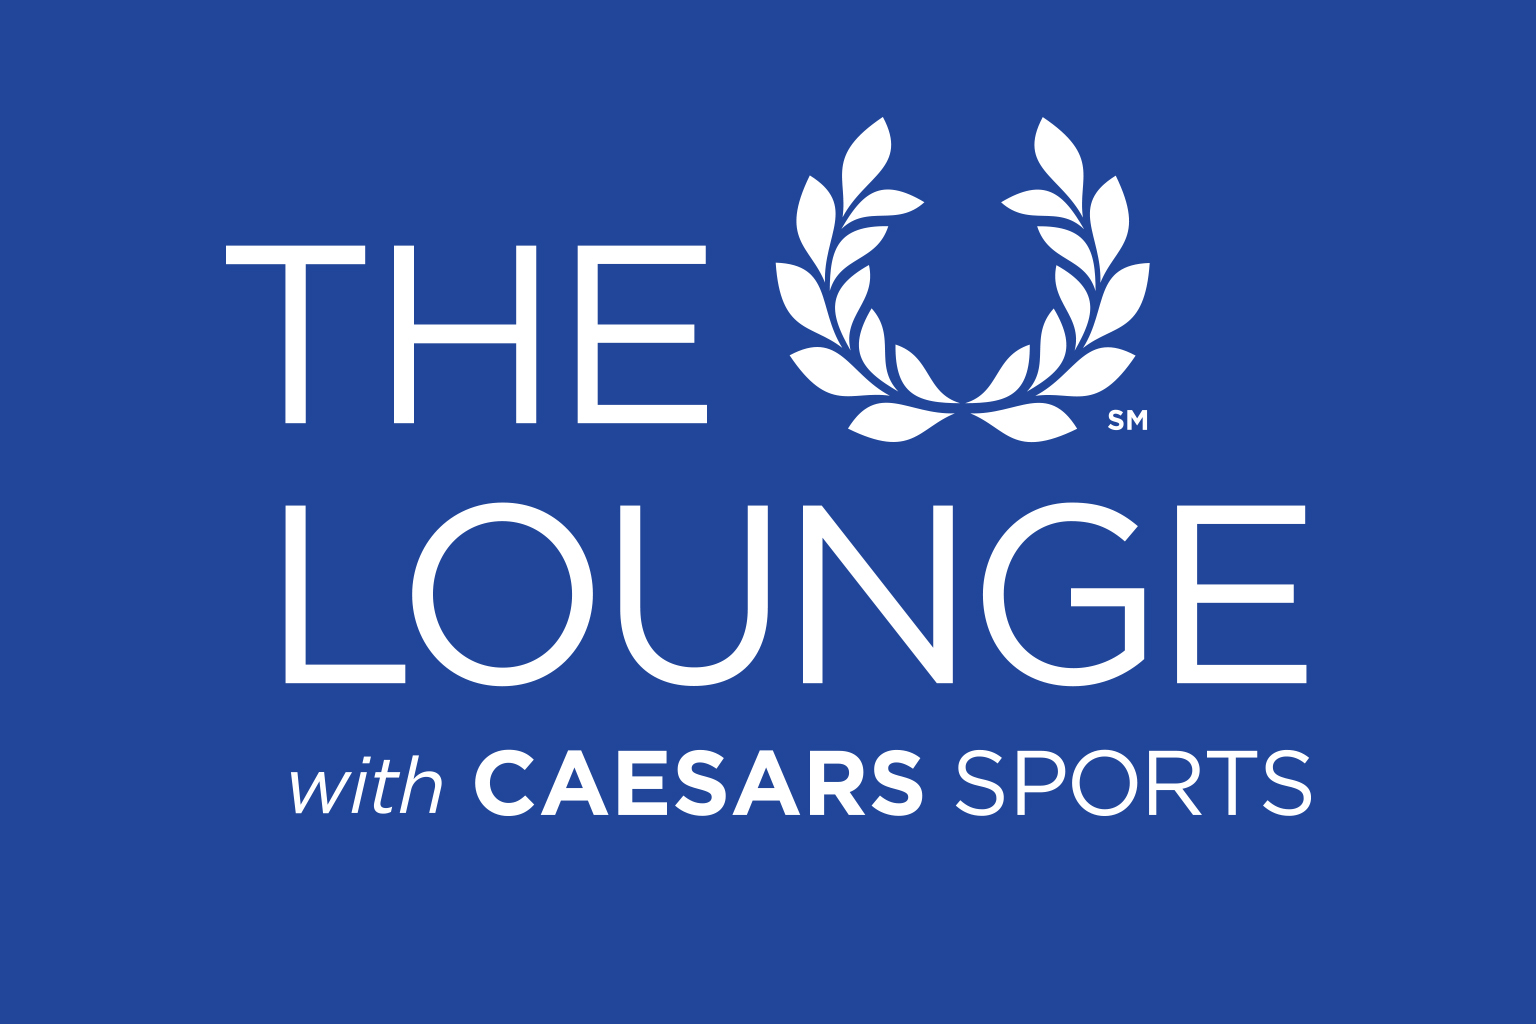 The Lounge at Caesars Sports